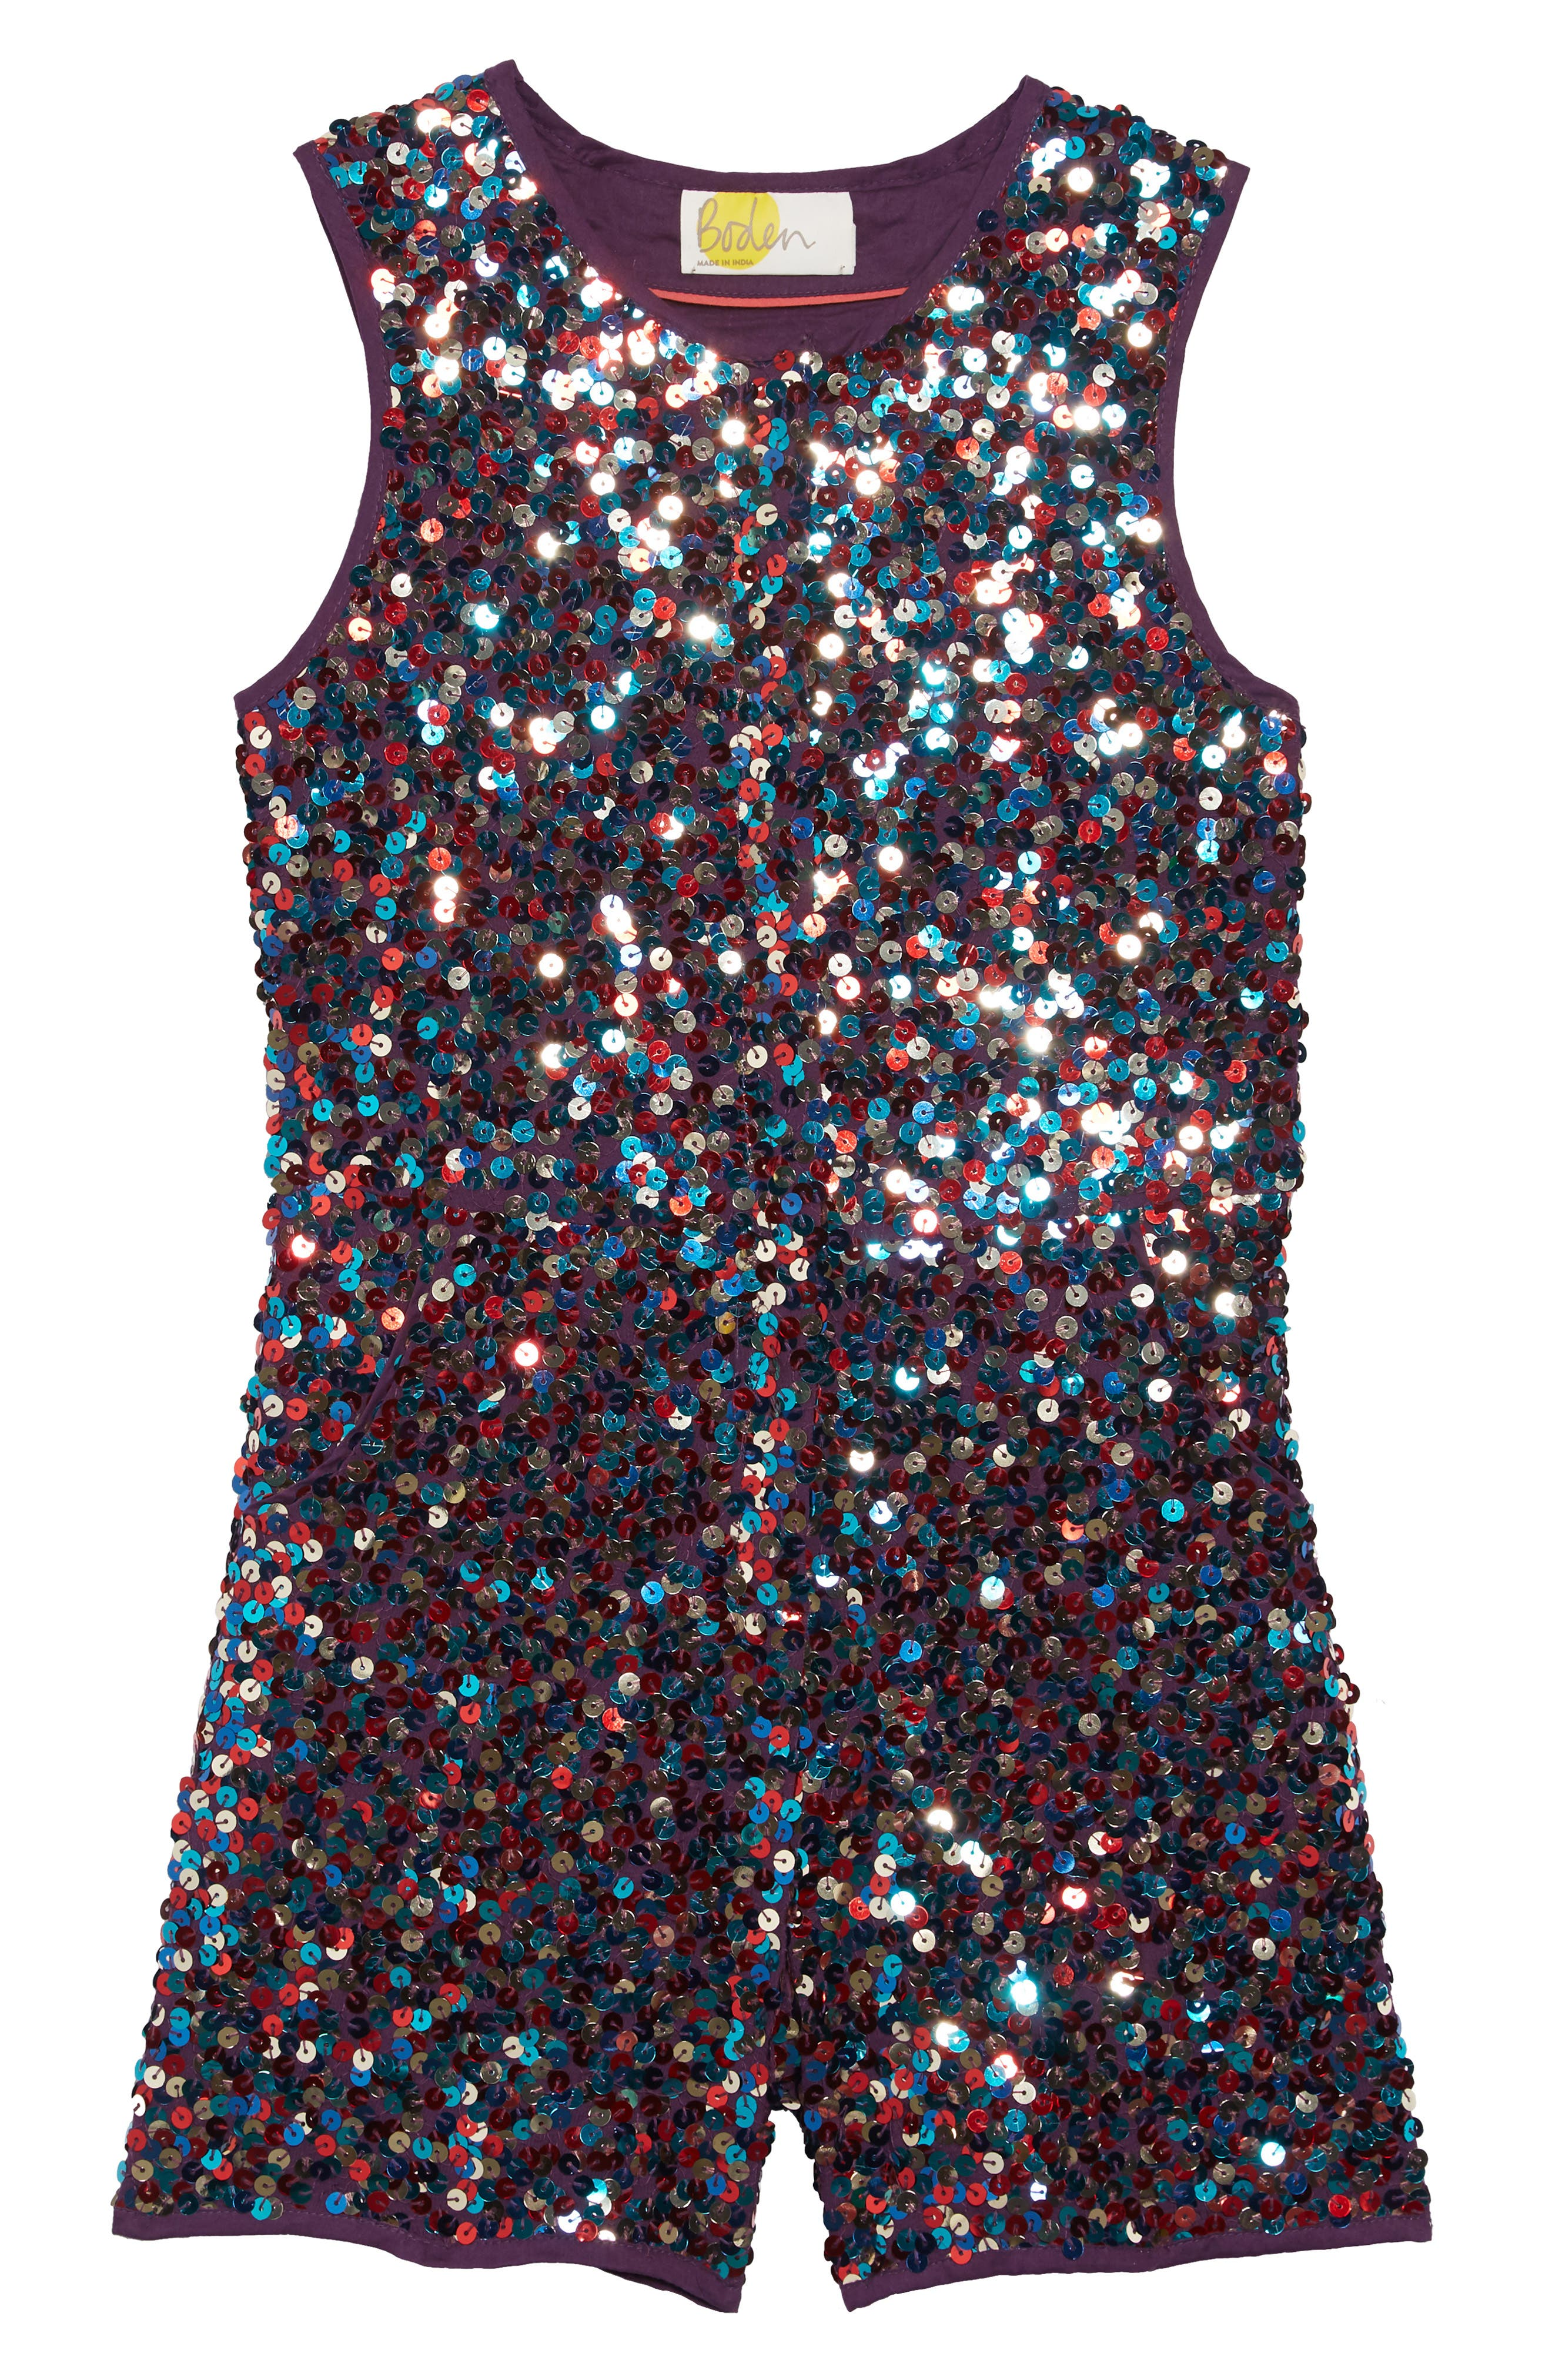 Girls Mini Boden Sequin Romper Size 89Y  Metallic